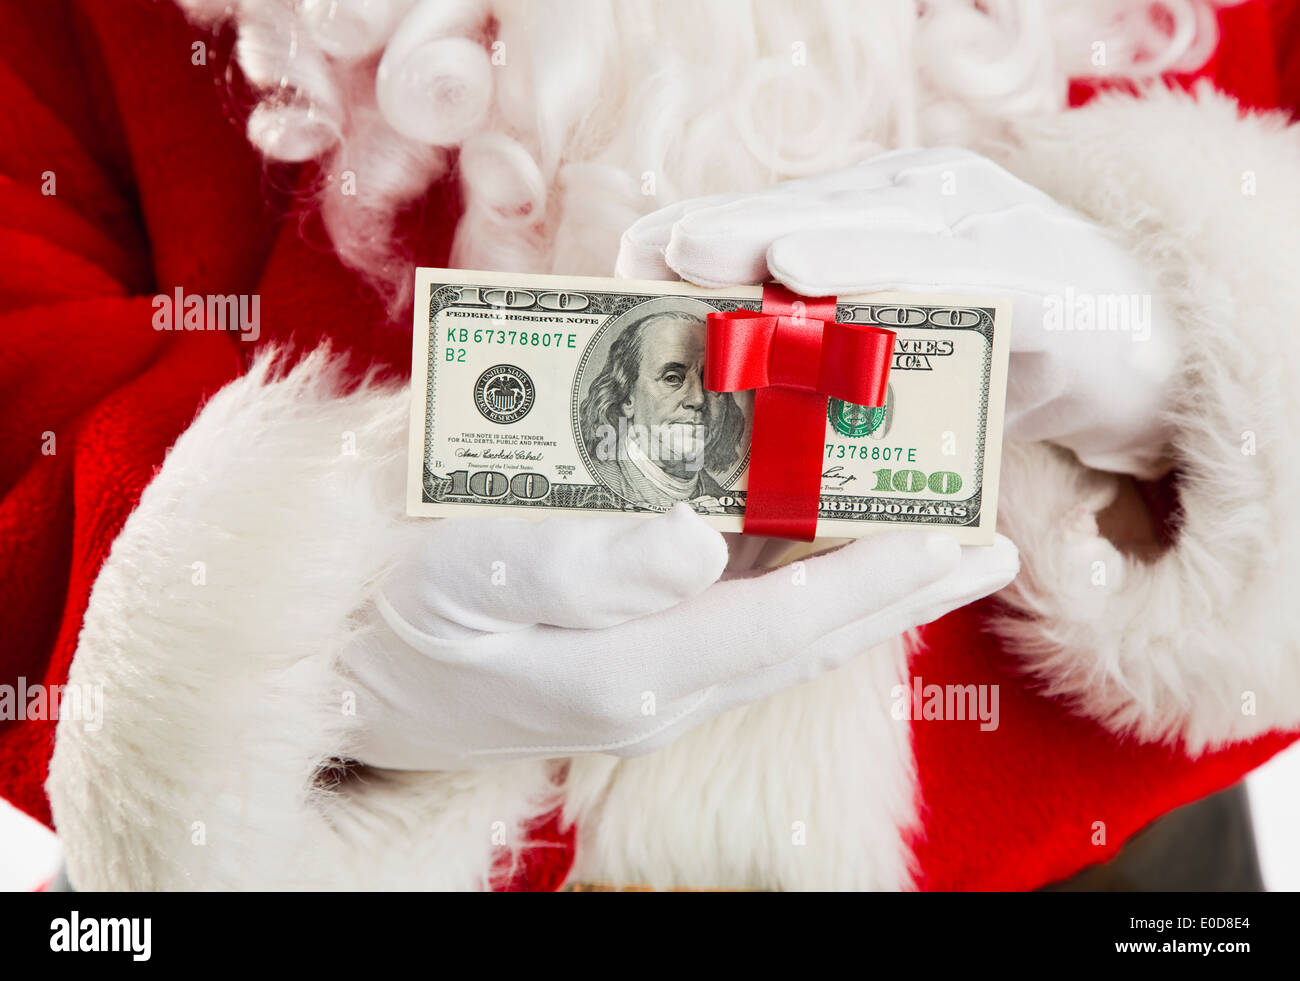 Mid section of Santa holding paper currency tied with ribbon - Stock Image